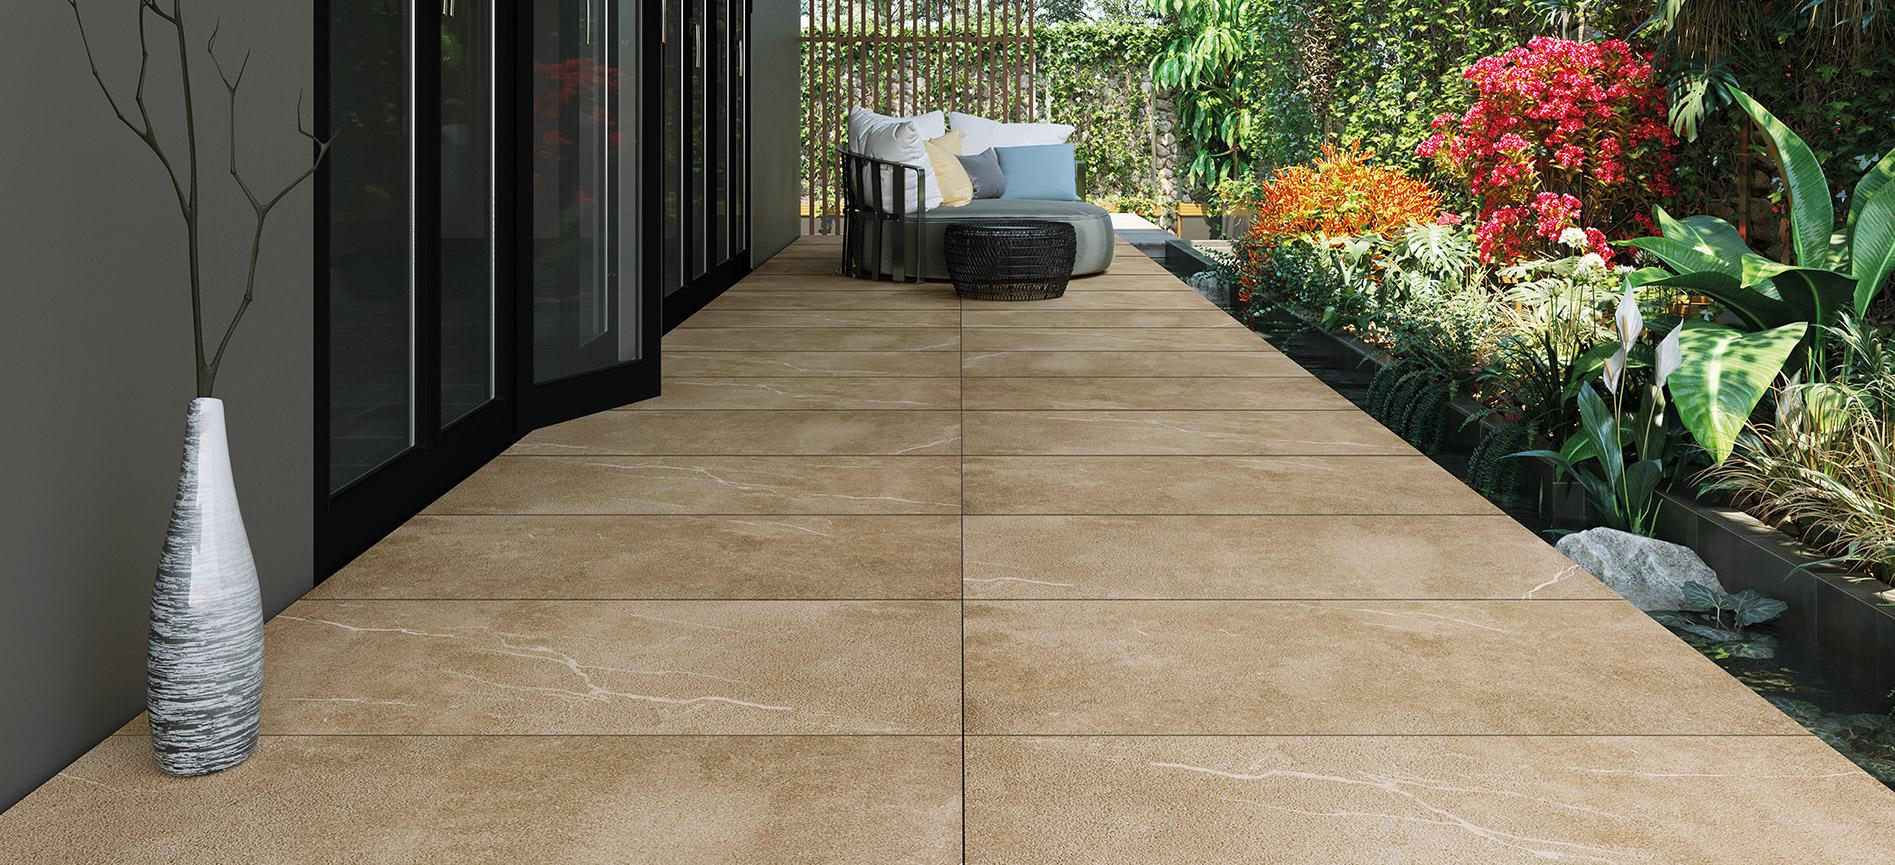 10mm Porcelain Tiles ( Suitable For Outside )